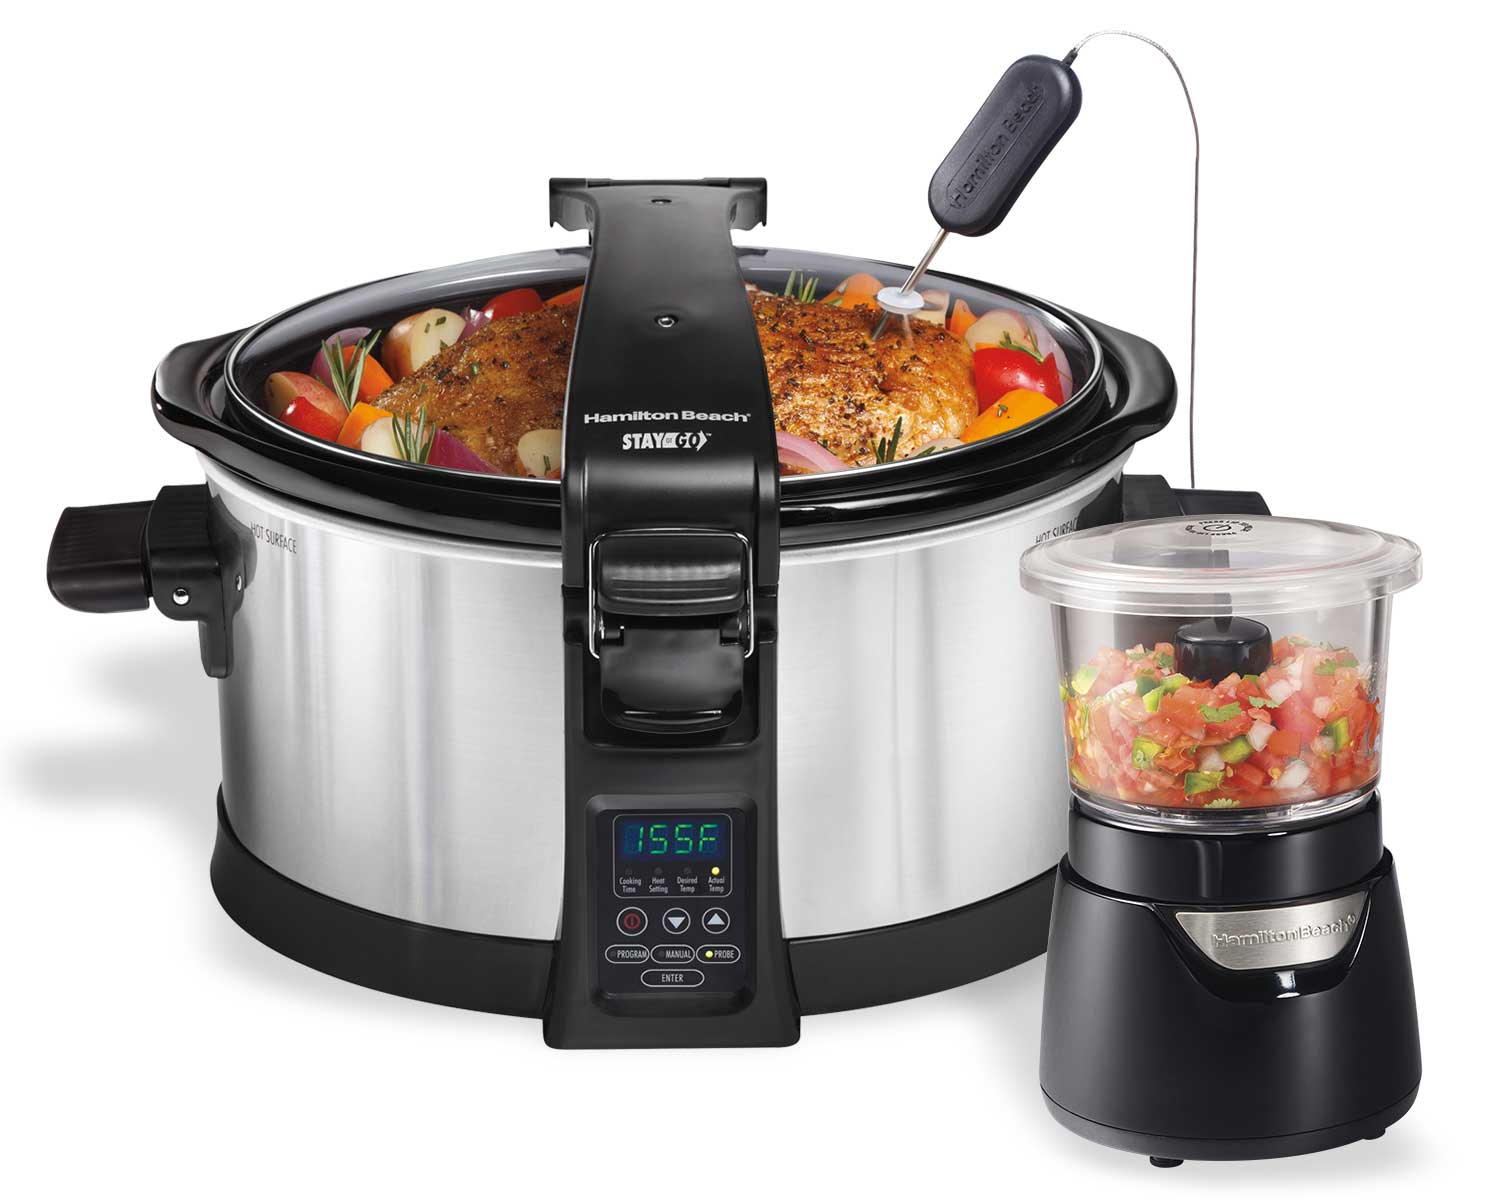 Chop & Cook Bundle w/ Slow Cooker.